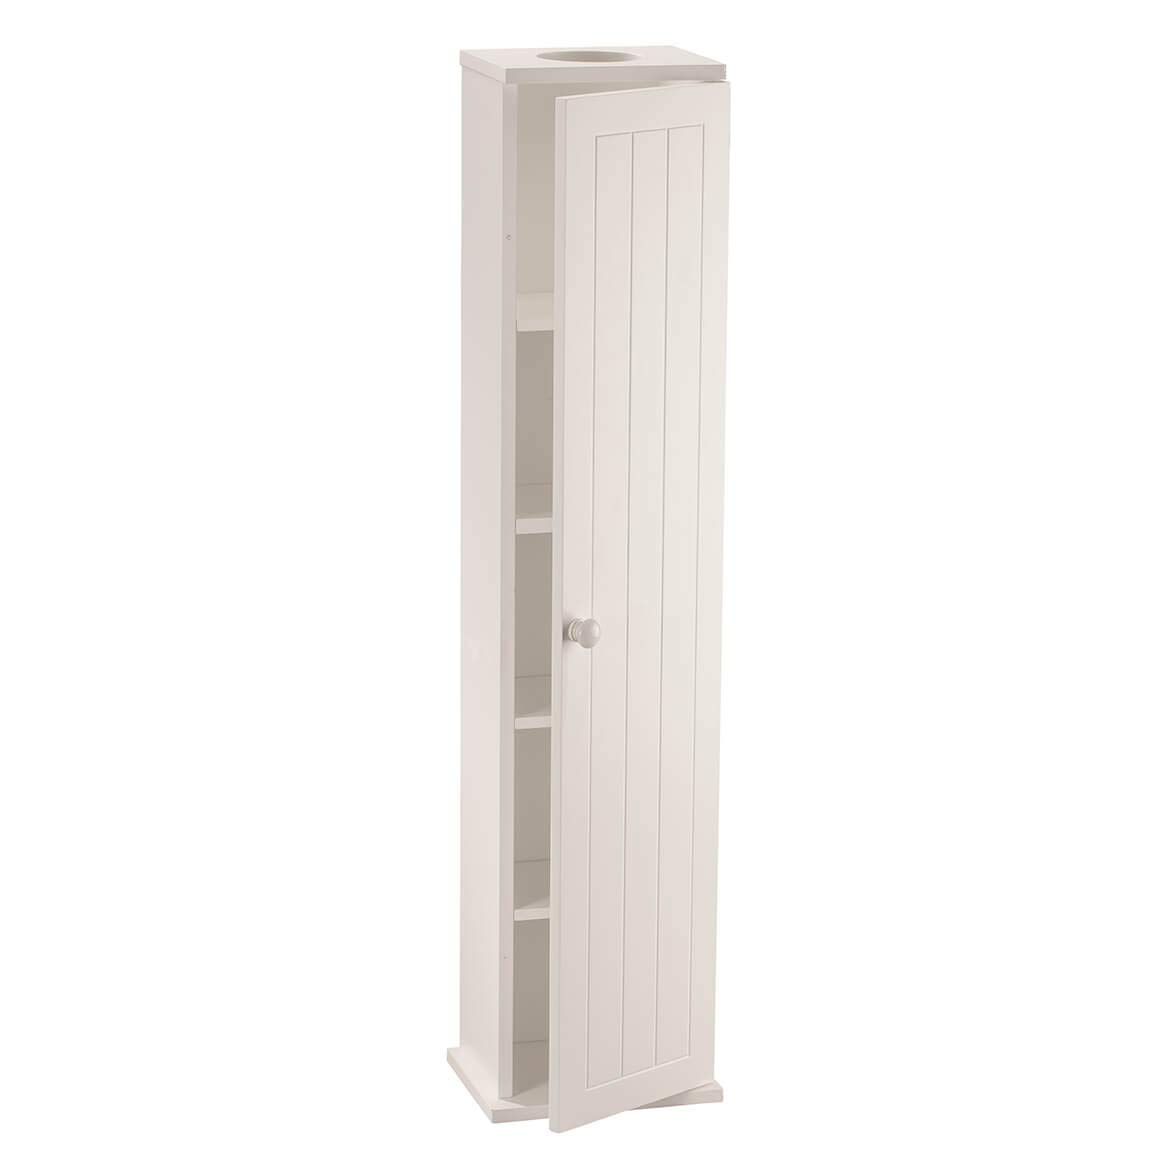 OakRidge Ambrose Collection Mega Roll Toilet Tissue Tower by OakRidge (Image #2)